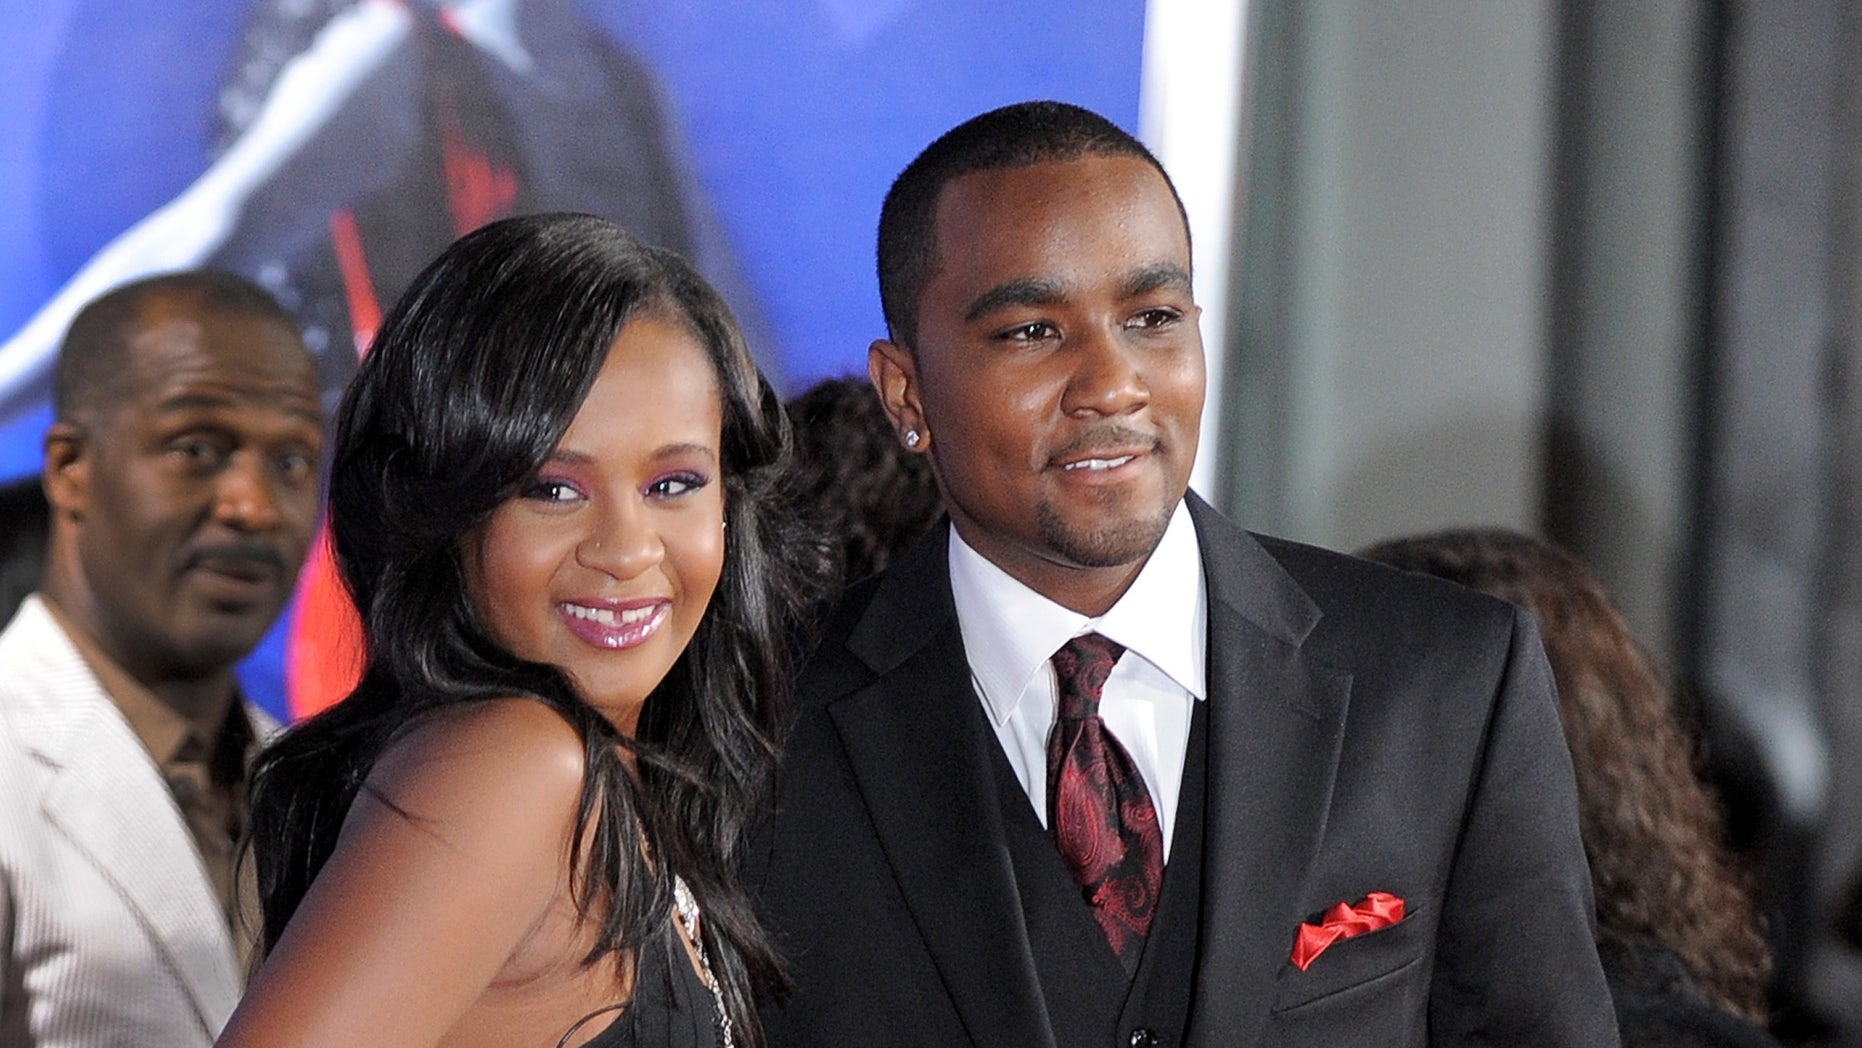 """Aug. 16, 2012.  Bobbi Kristina Brown, left, and Nick Gordon attend the Los Angeles premiere of """"Sparkle"""" at Grauman's Chinese Theatre in Los Angeles."""